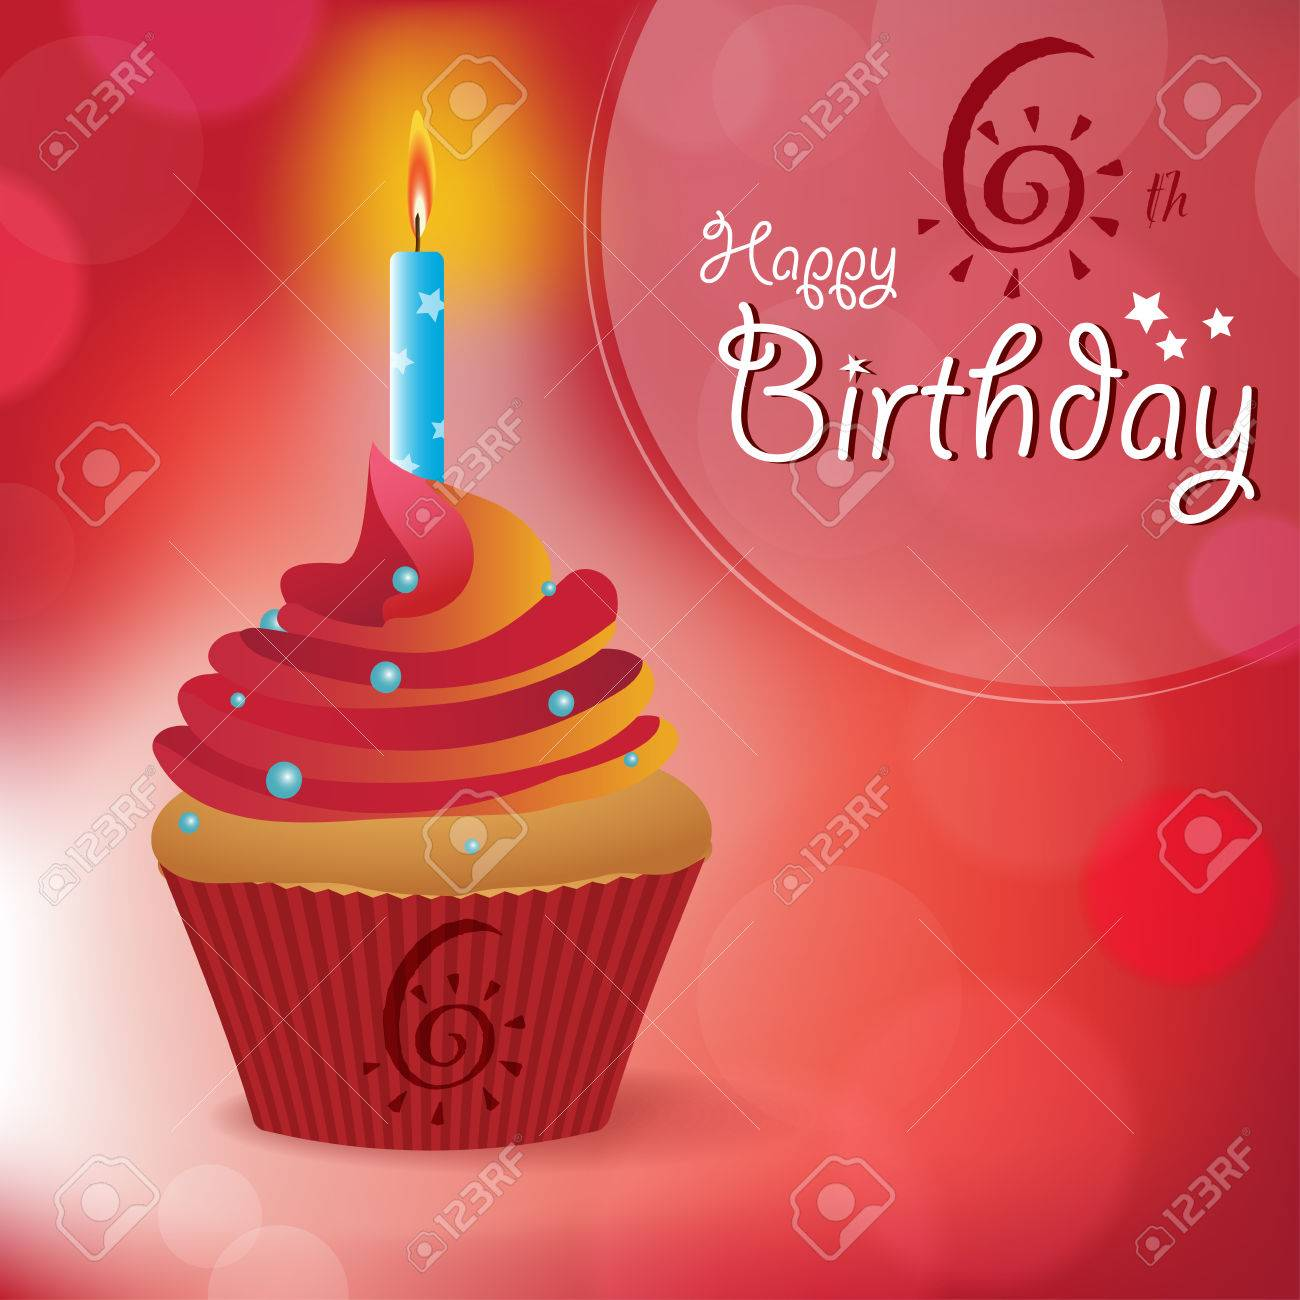 Happy 6th Birthday Greeting Invitation Message Bokeh Vector Royalty Free Cliparts Vectors And Stock Illustration Image 30649427